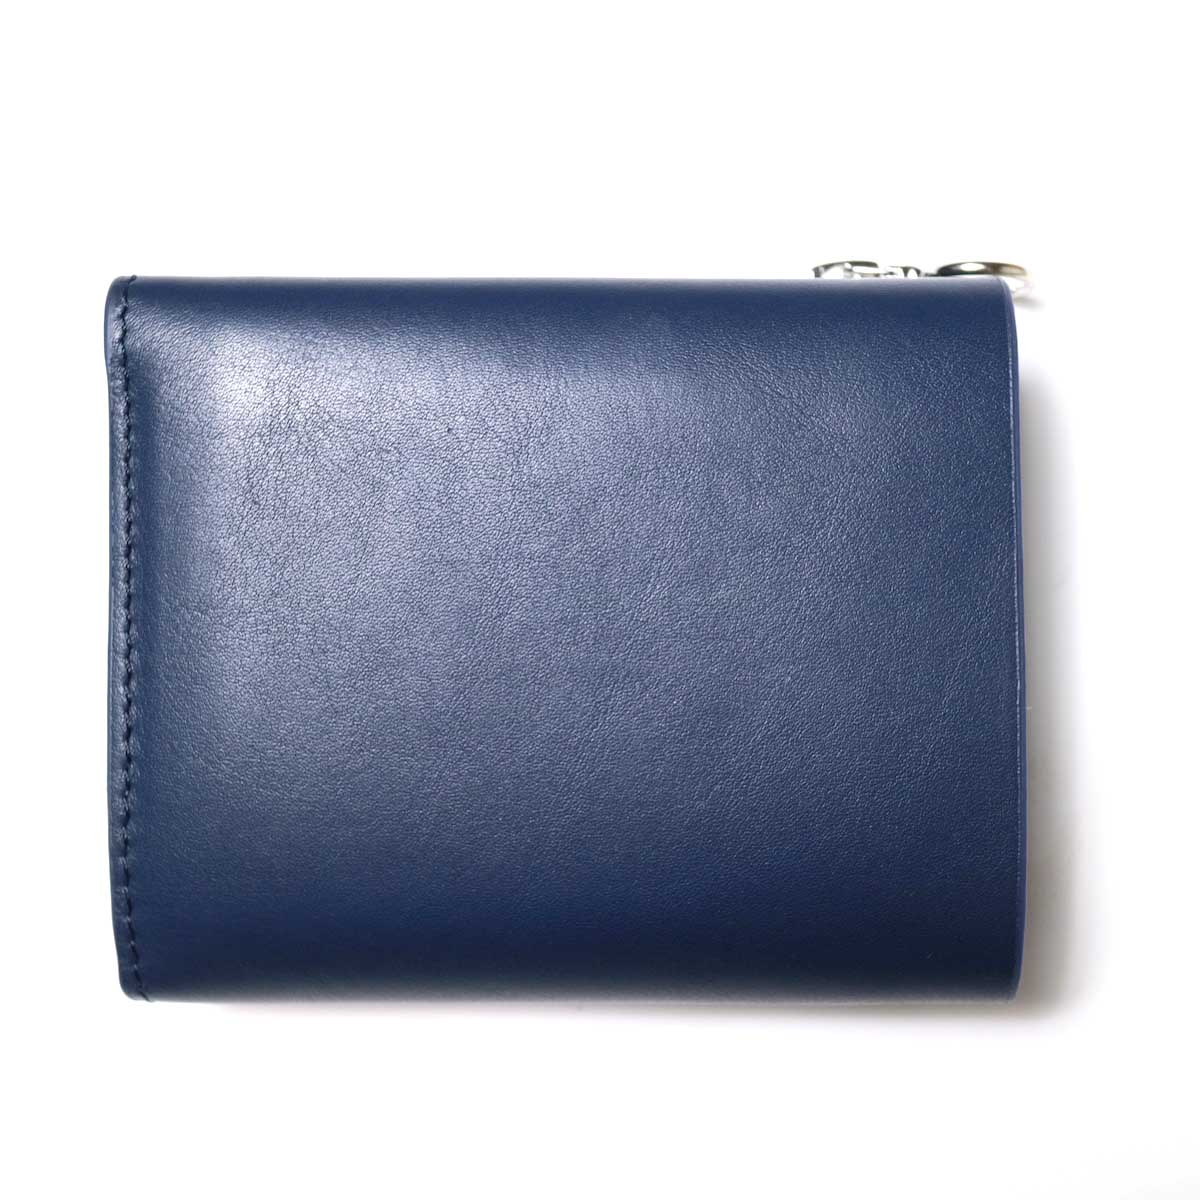 Aeta / FG LEATHER WALLET typeA (DARK NAVY) 背面